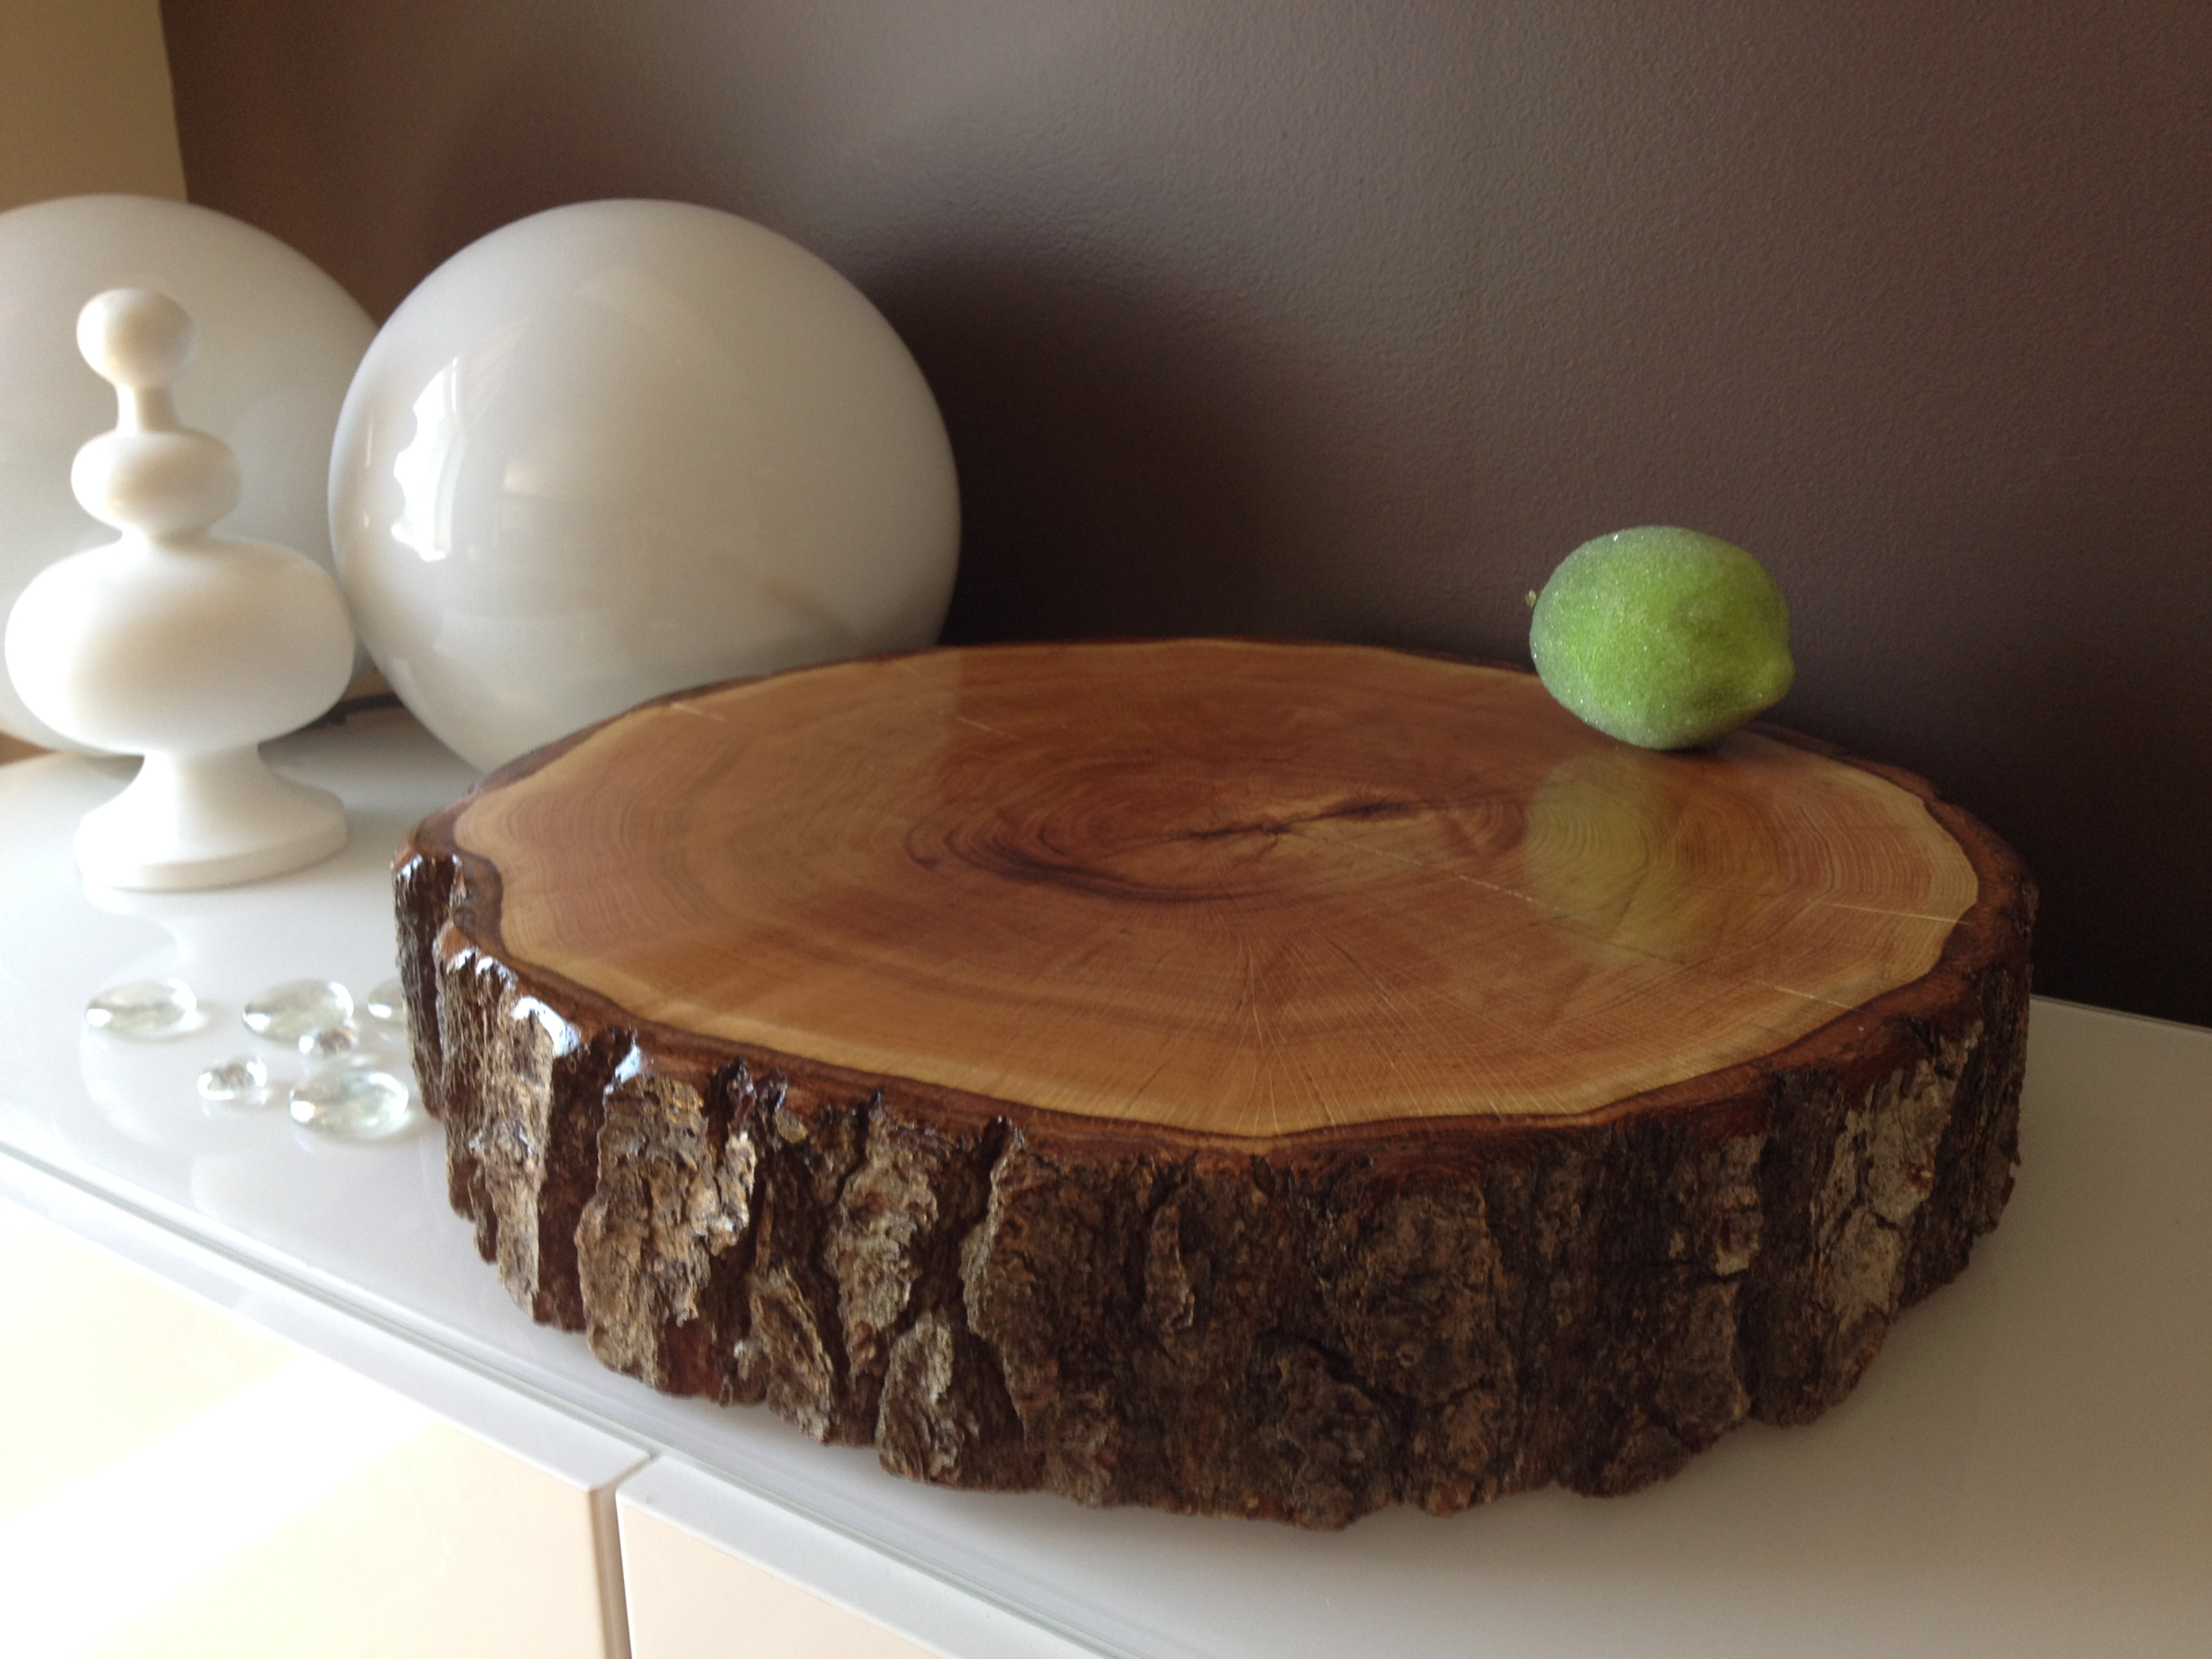 Wood Slice Wedding Cake Stands  Wood Rounds Stump Cake Stand Wedding Cake Stands   Cupcake Stands